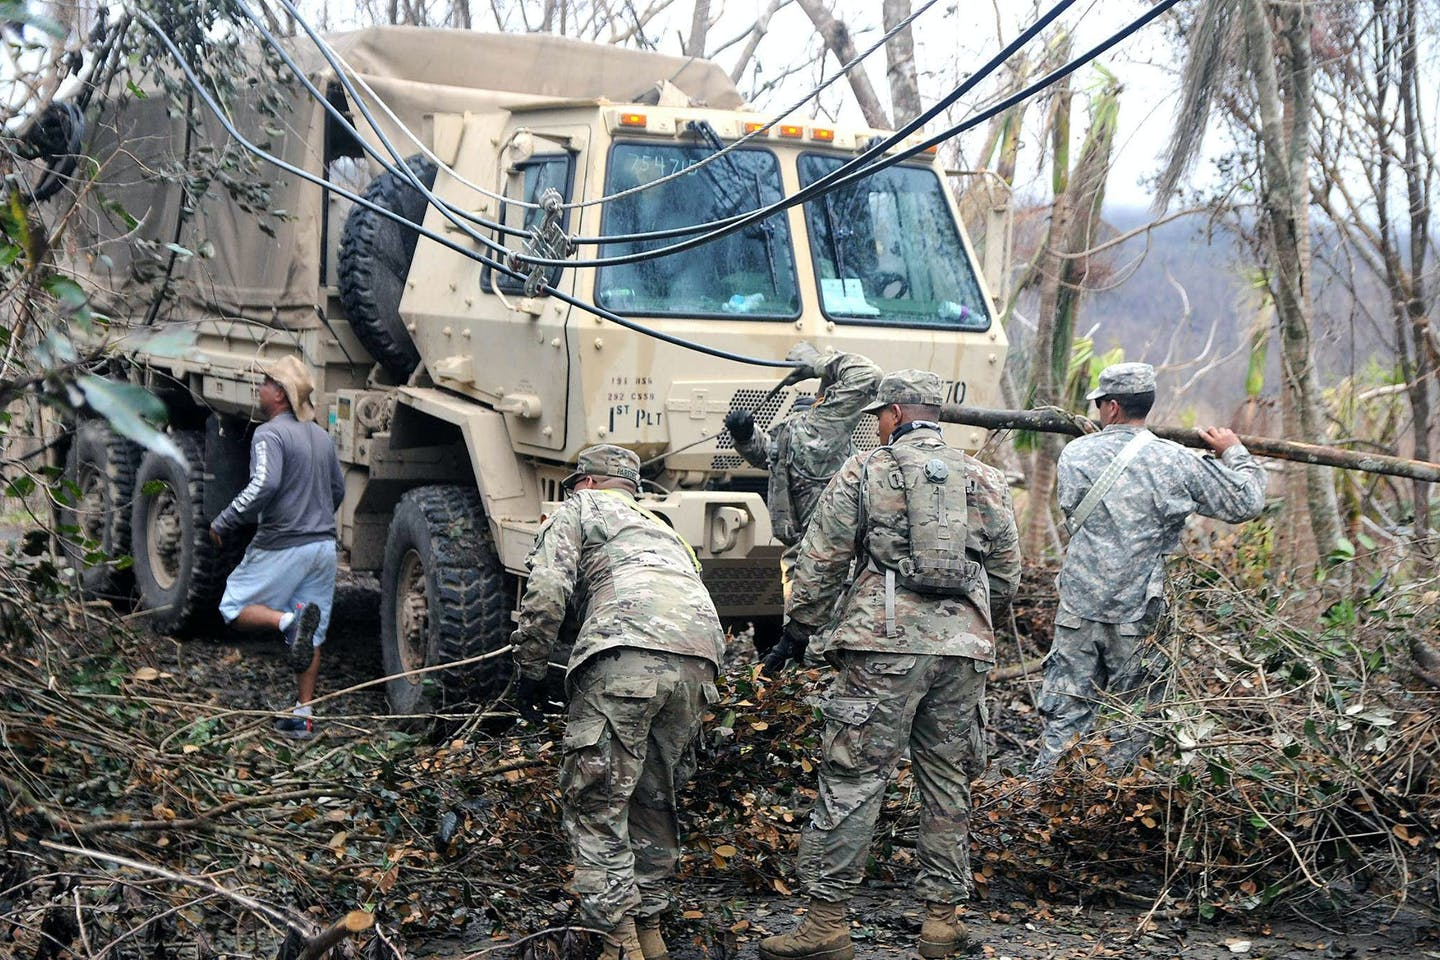 The Puerto Rico Army National Guard clearing the roads after Hurricane Maria